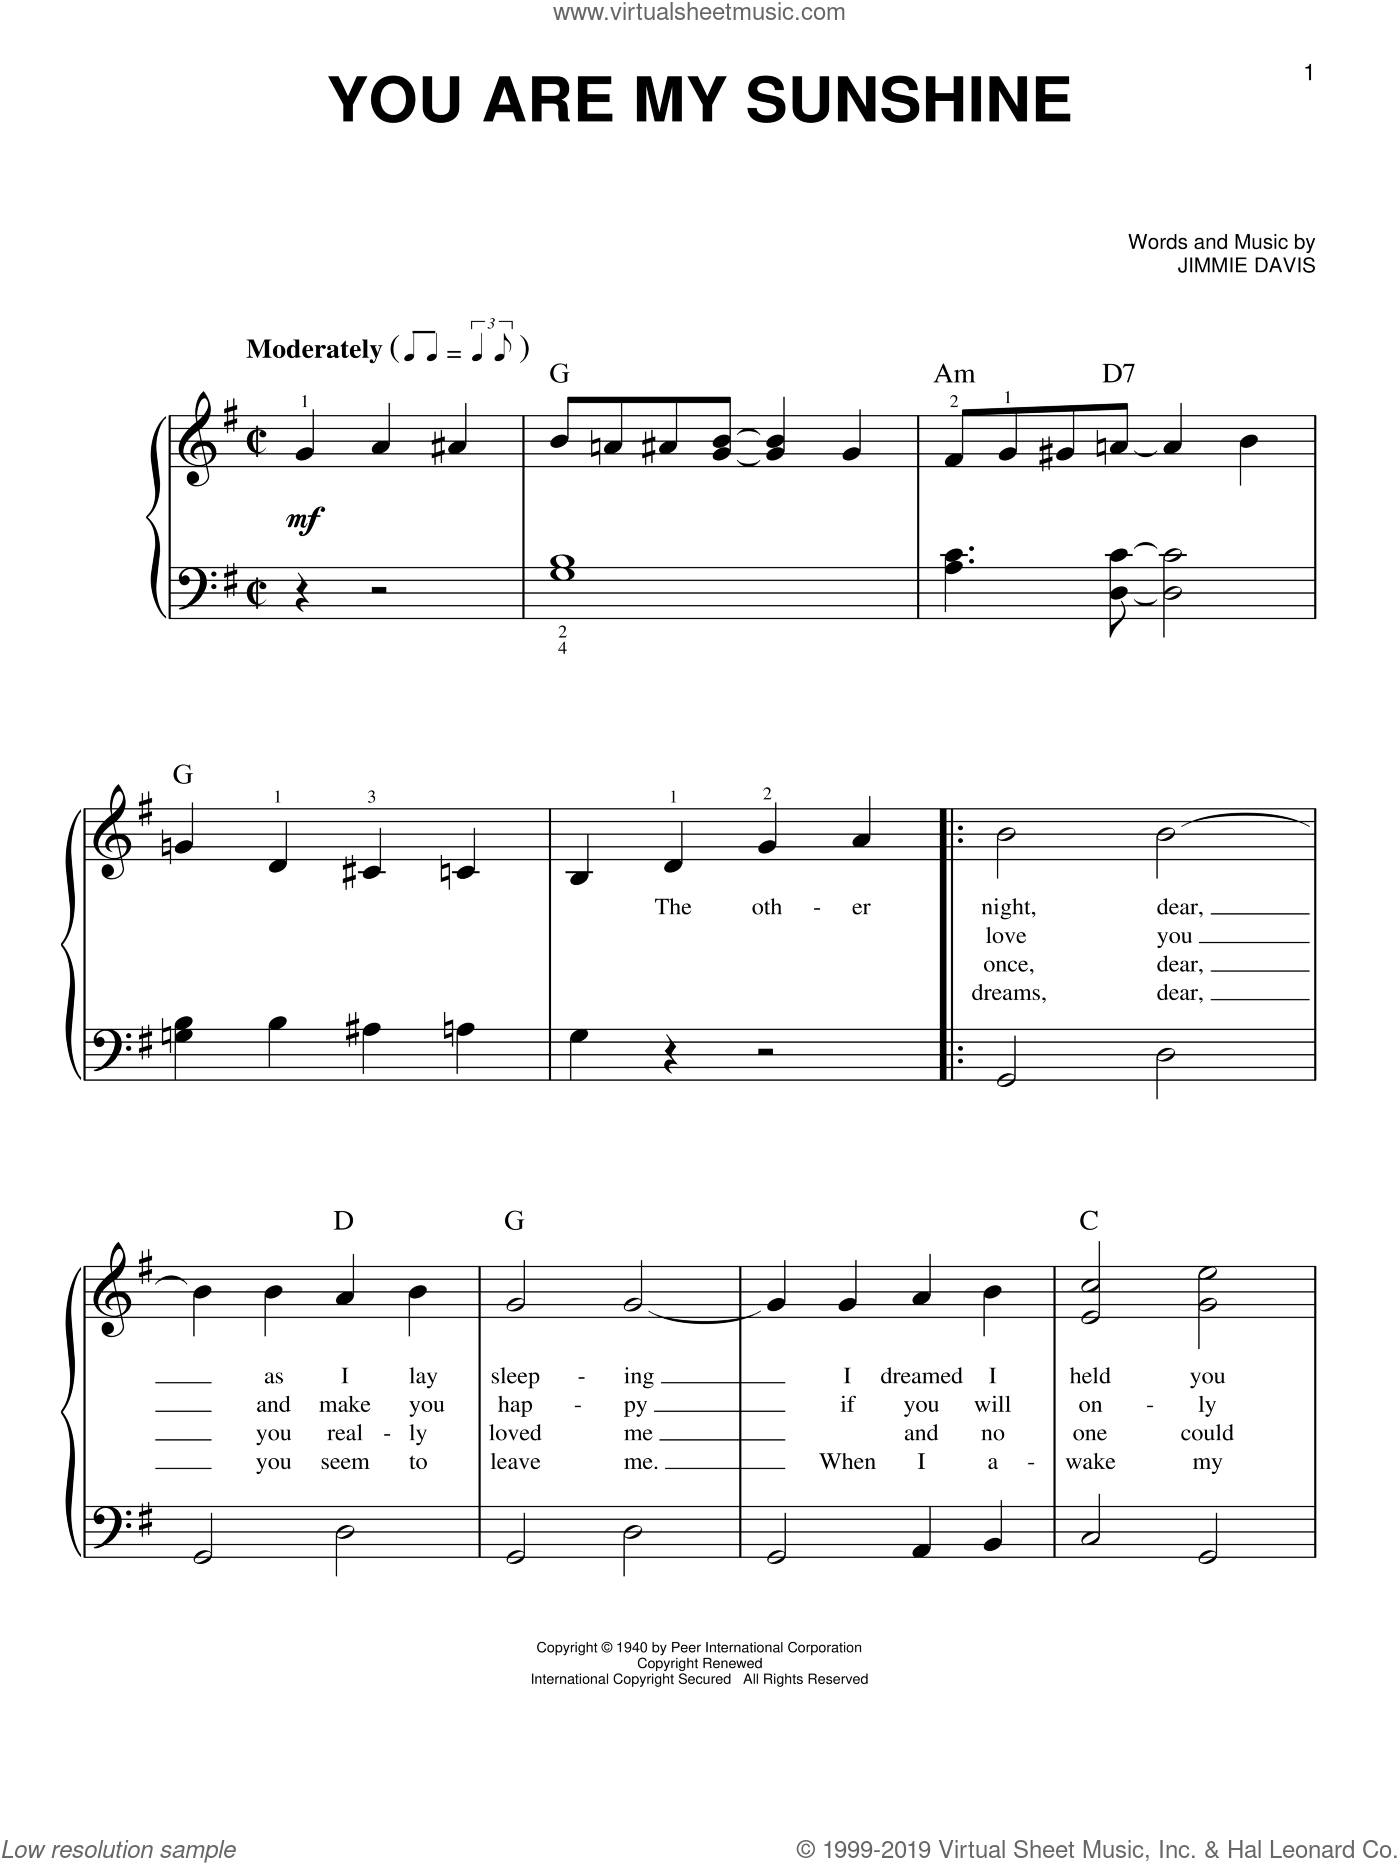 You Are My Sunshine sheet music for piano solo by Norman Blake, O Brother, Where Art Thou? (Movie), Charles Mitchell and Jimmie Davis, beginner skill level